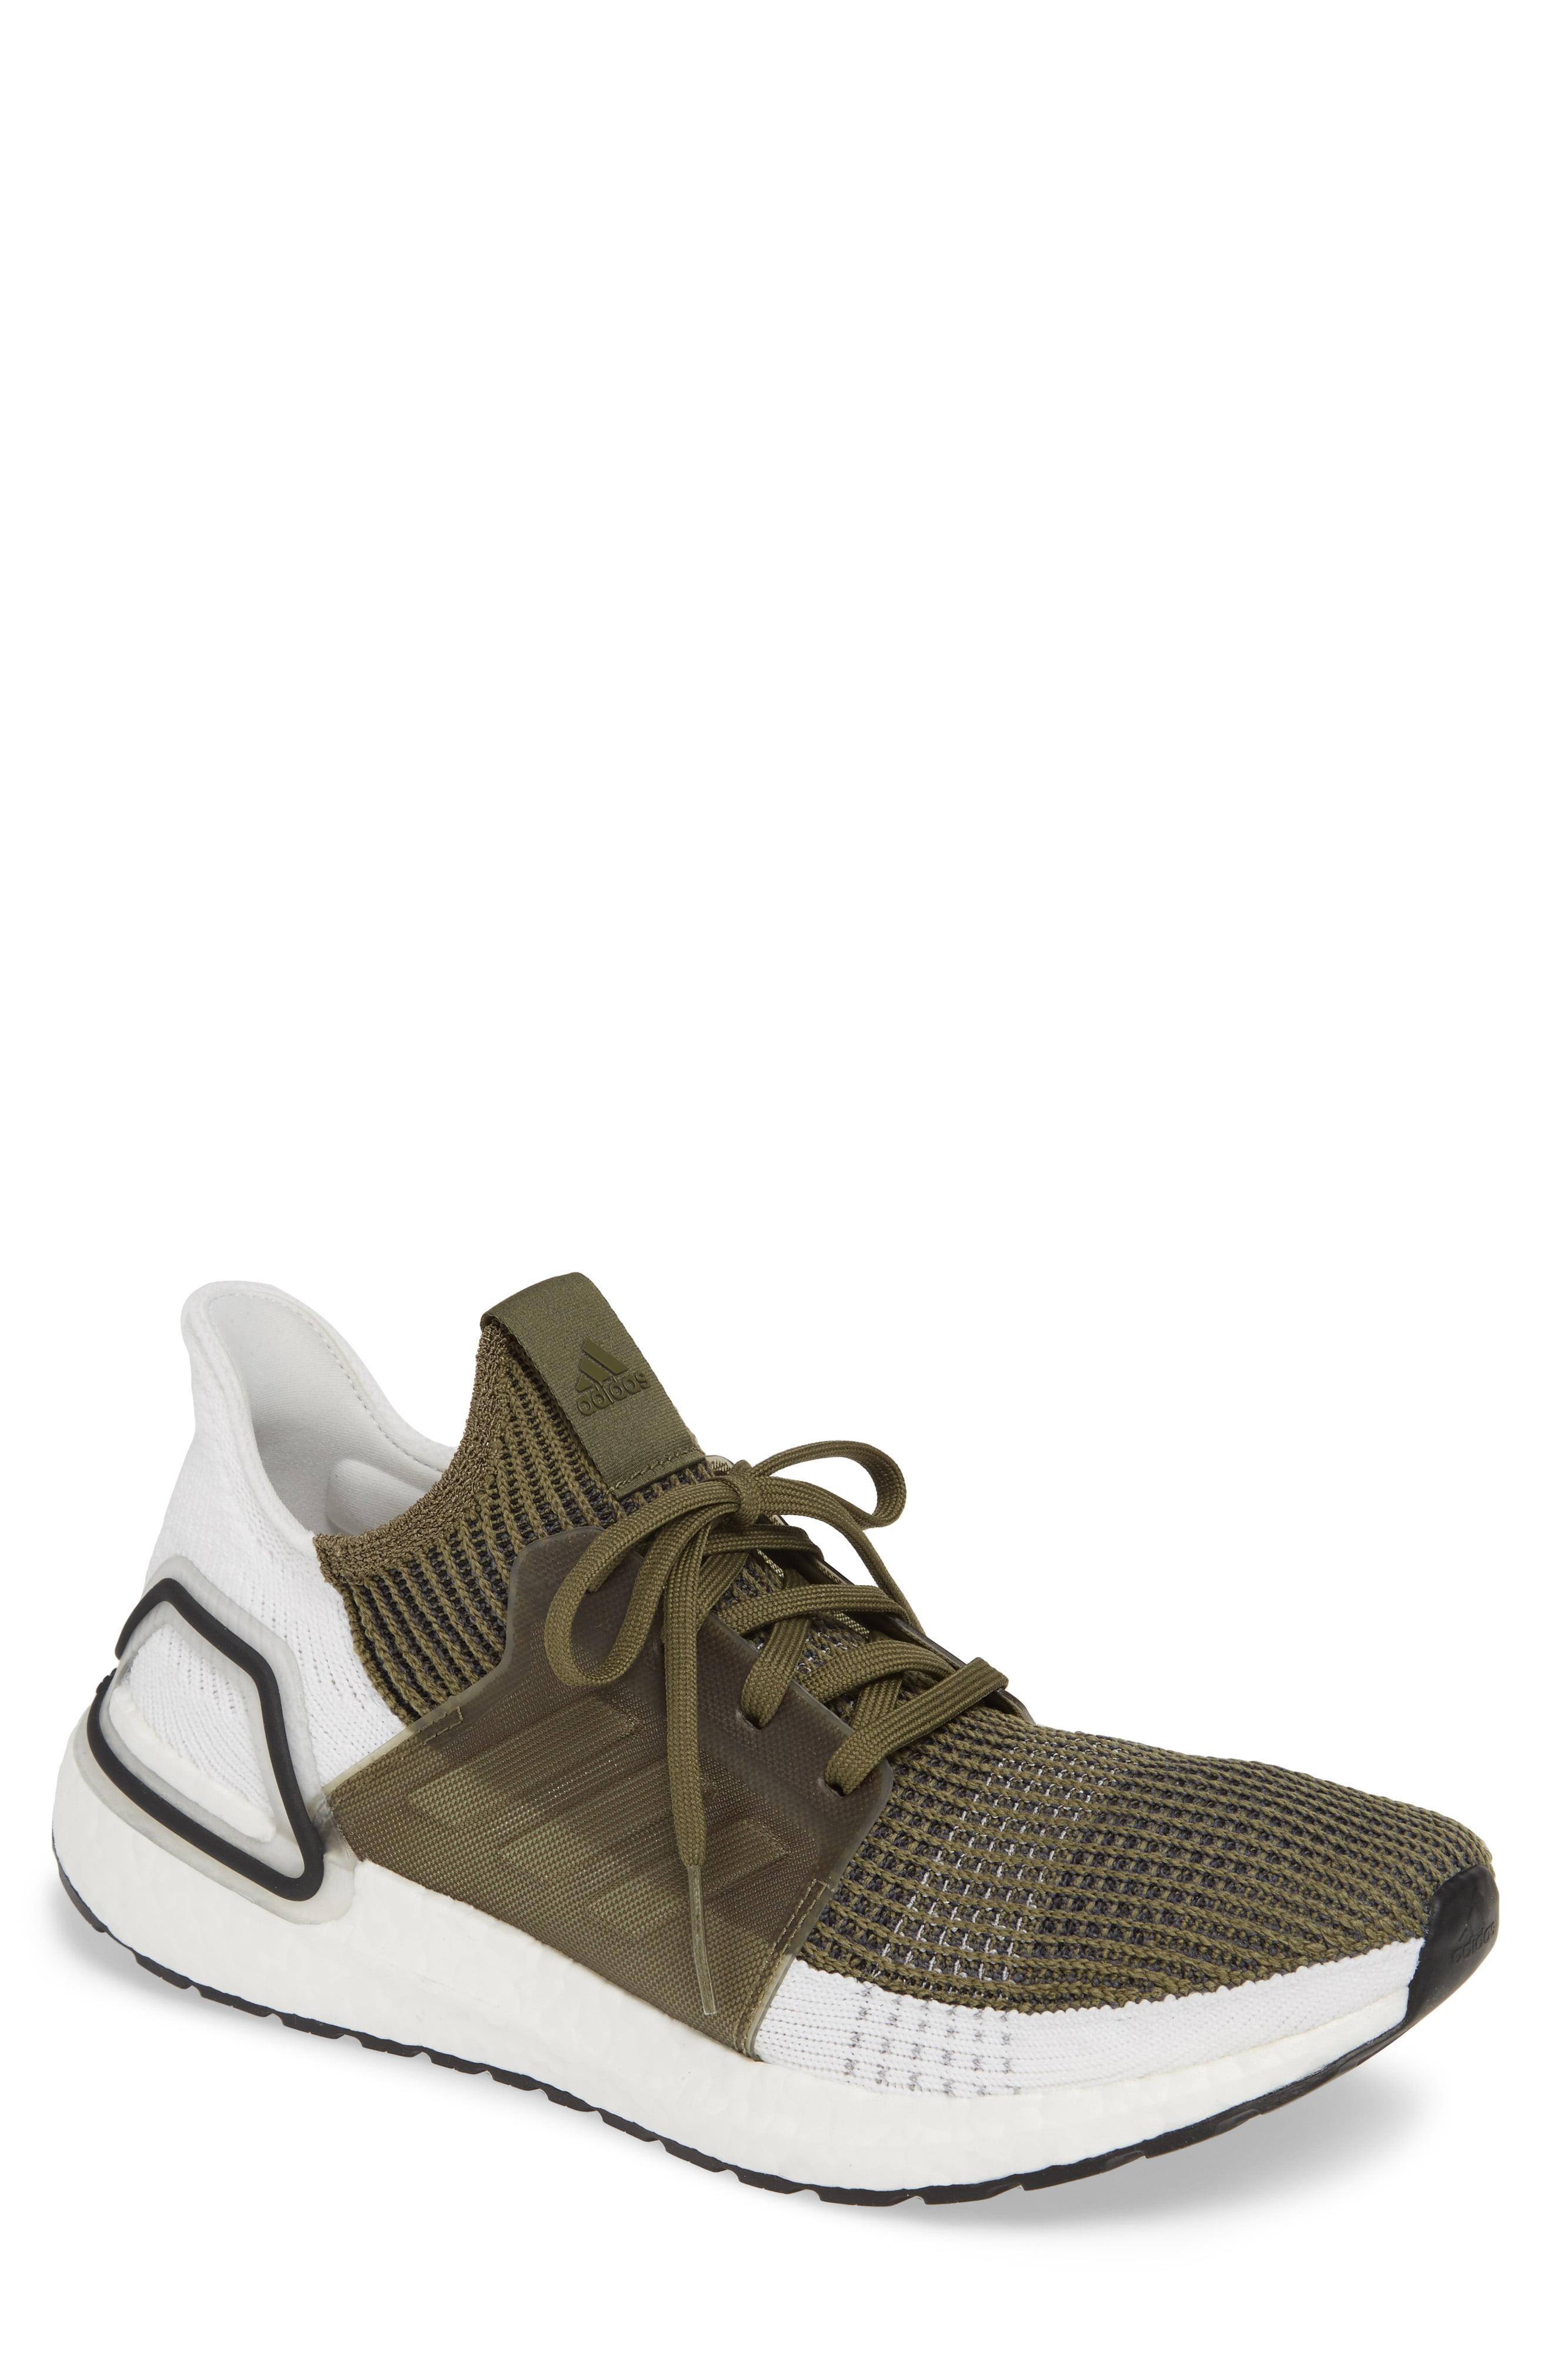 c0a1dc1f1 Lyst - adidas Ultraboost 19 Running Shoe for Men